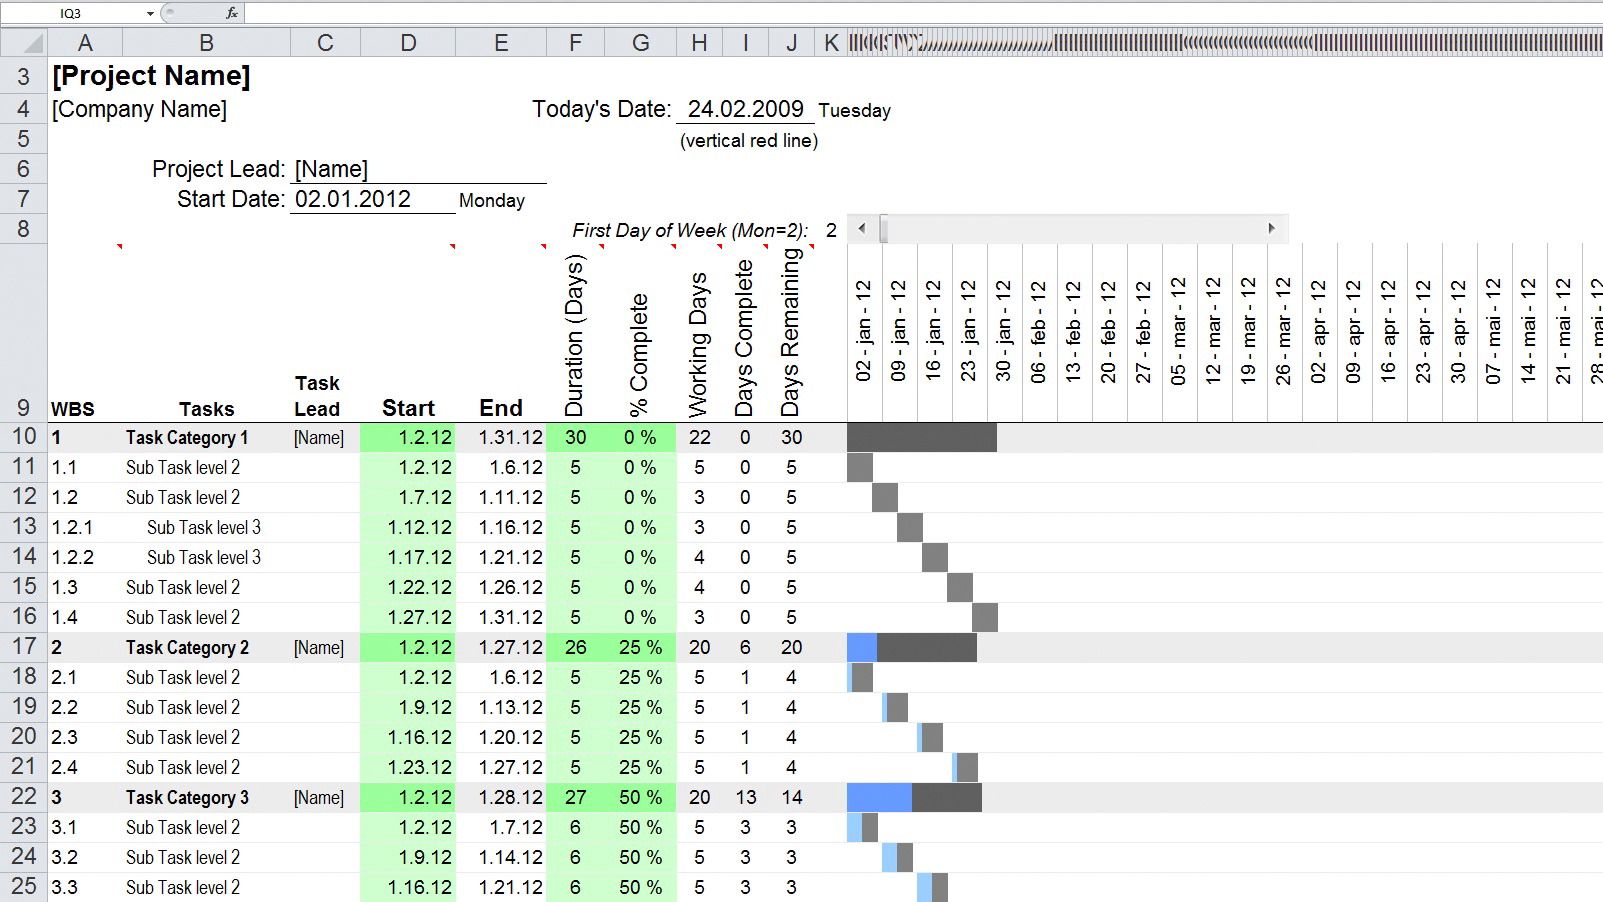 Excel mal oppussing